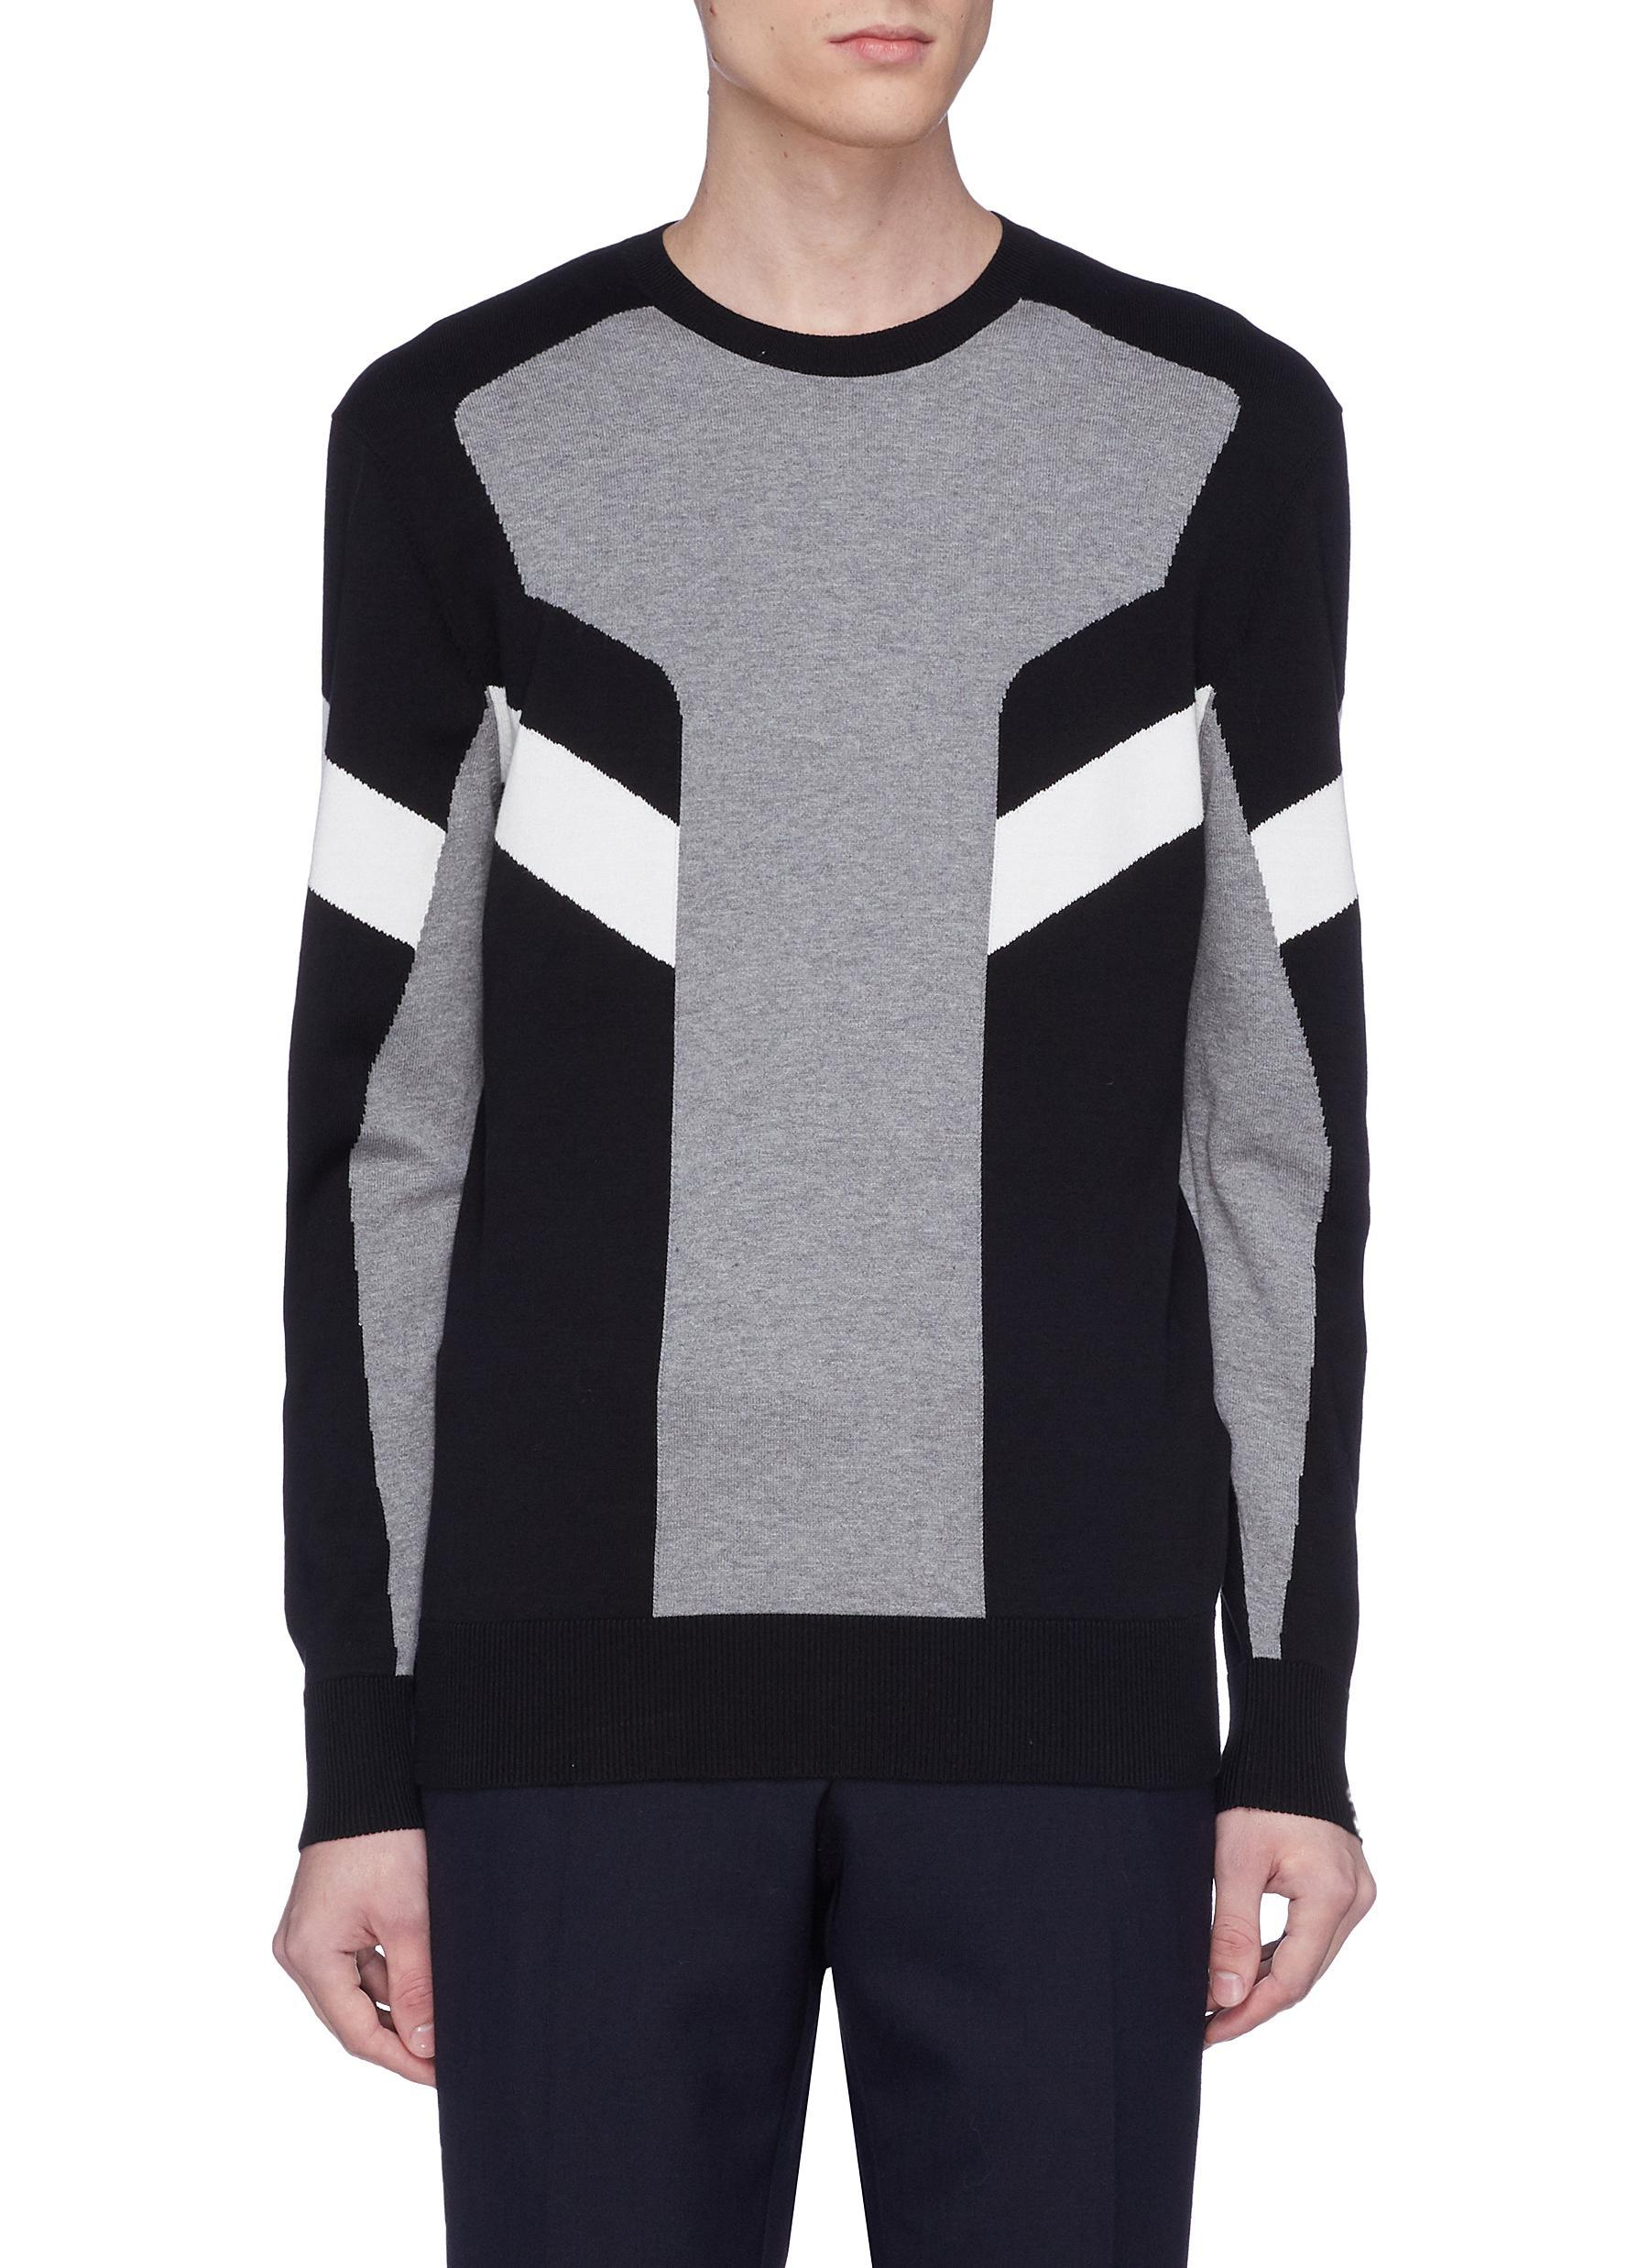 Intarsia Men's Sweater Neil Barrett Geometric Hf7xaq